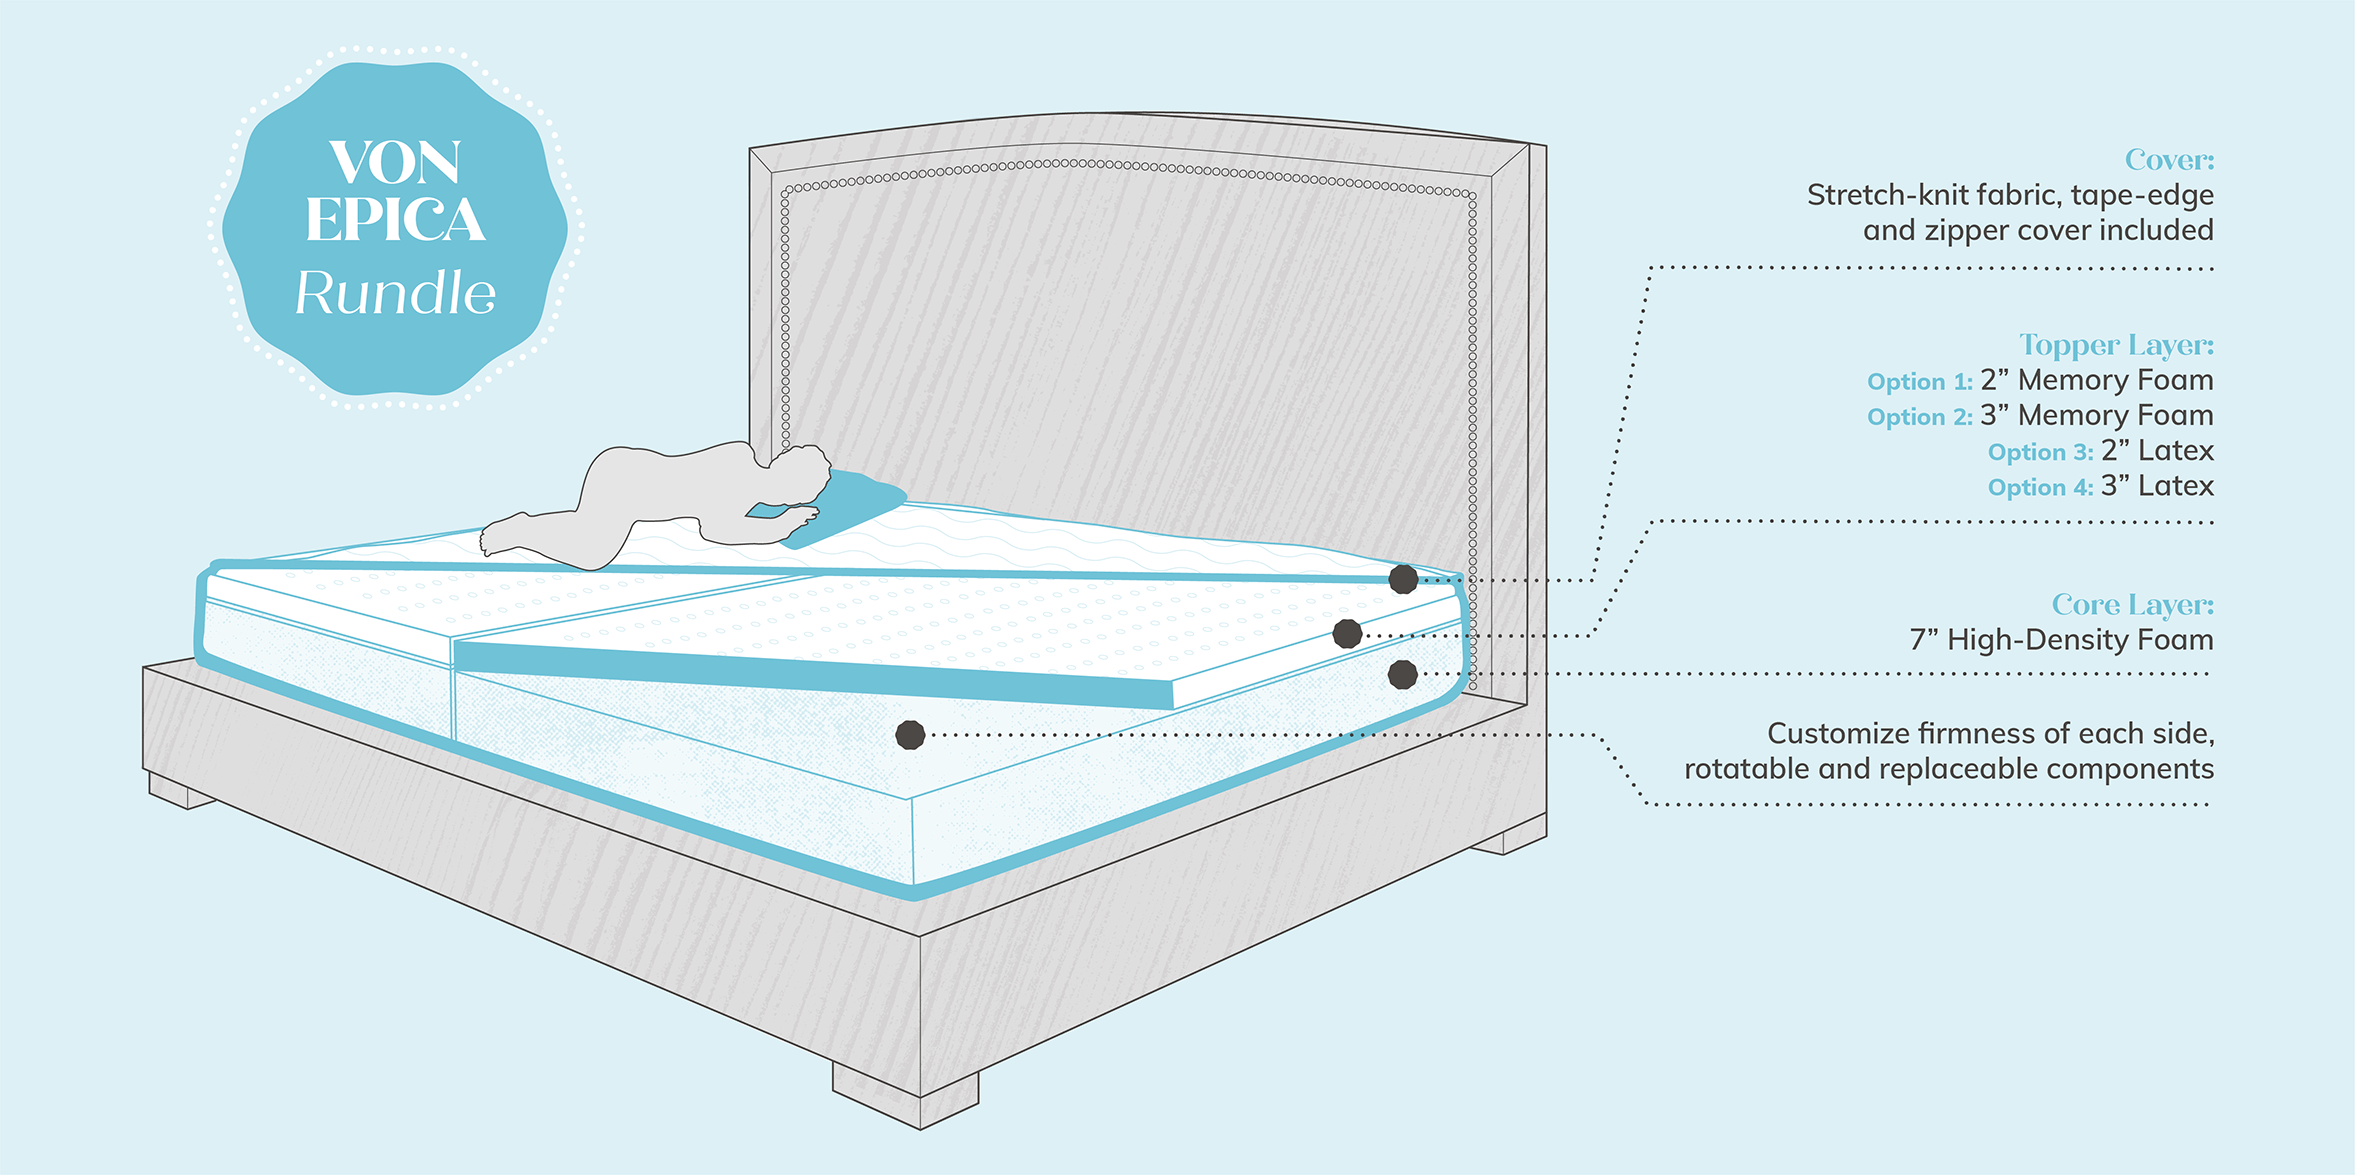 Oversized Mattress Diagram - Von Epica Rundle